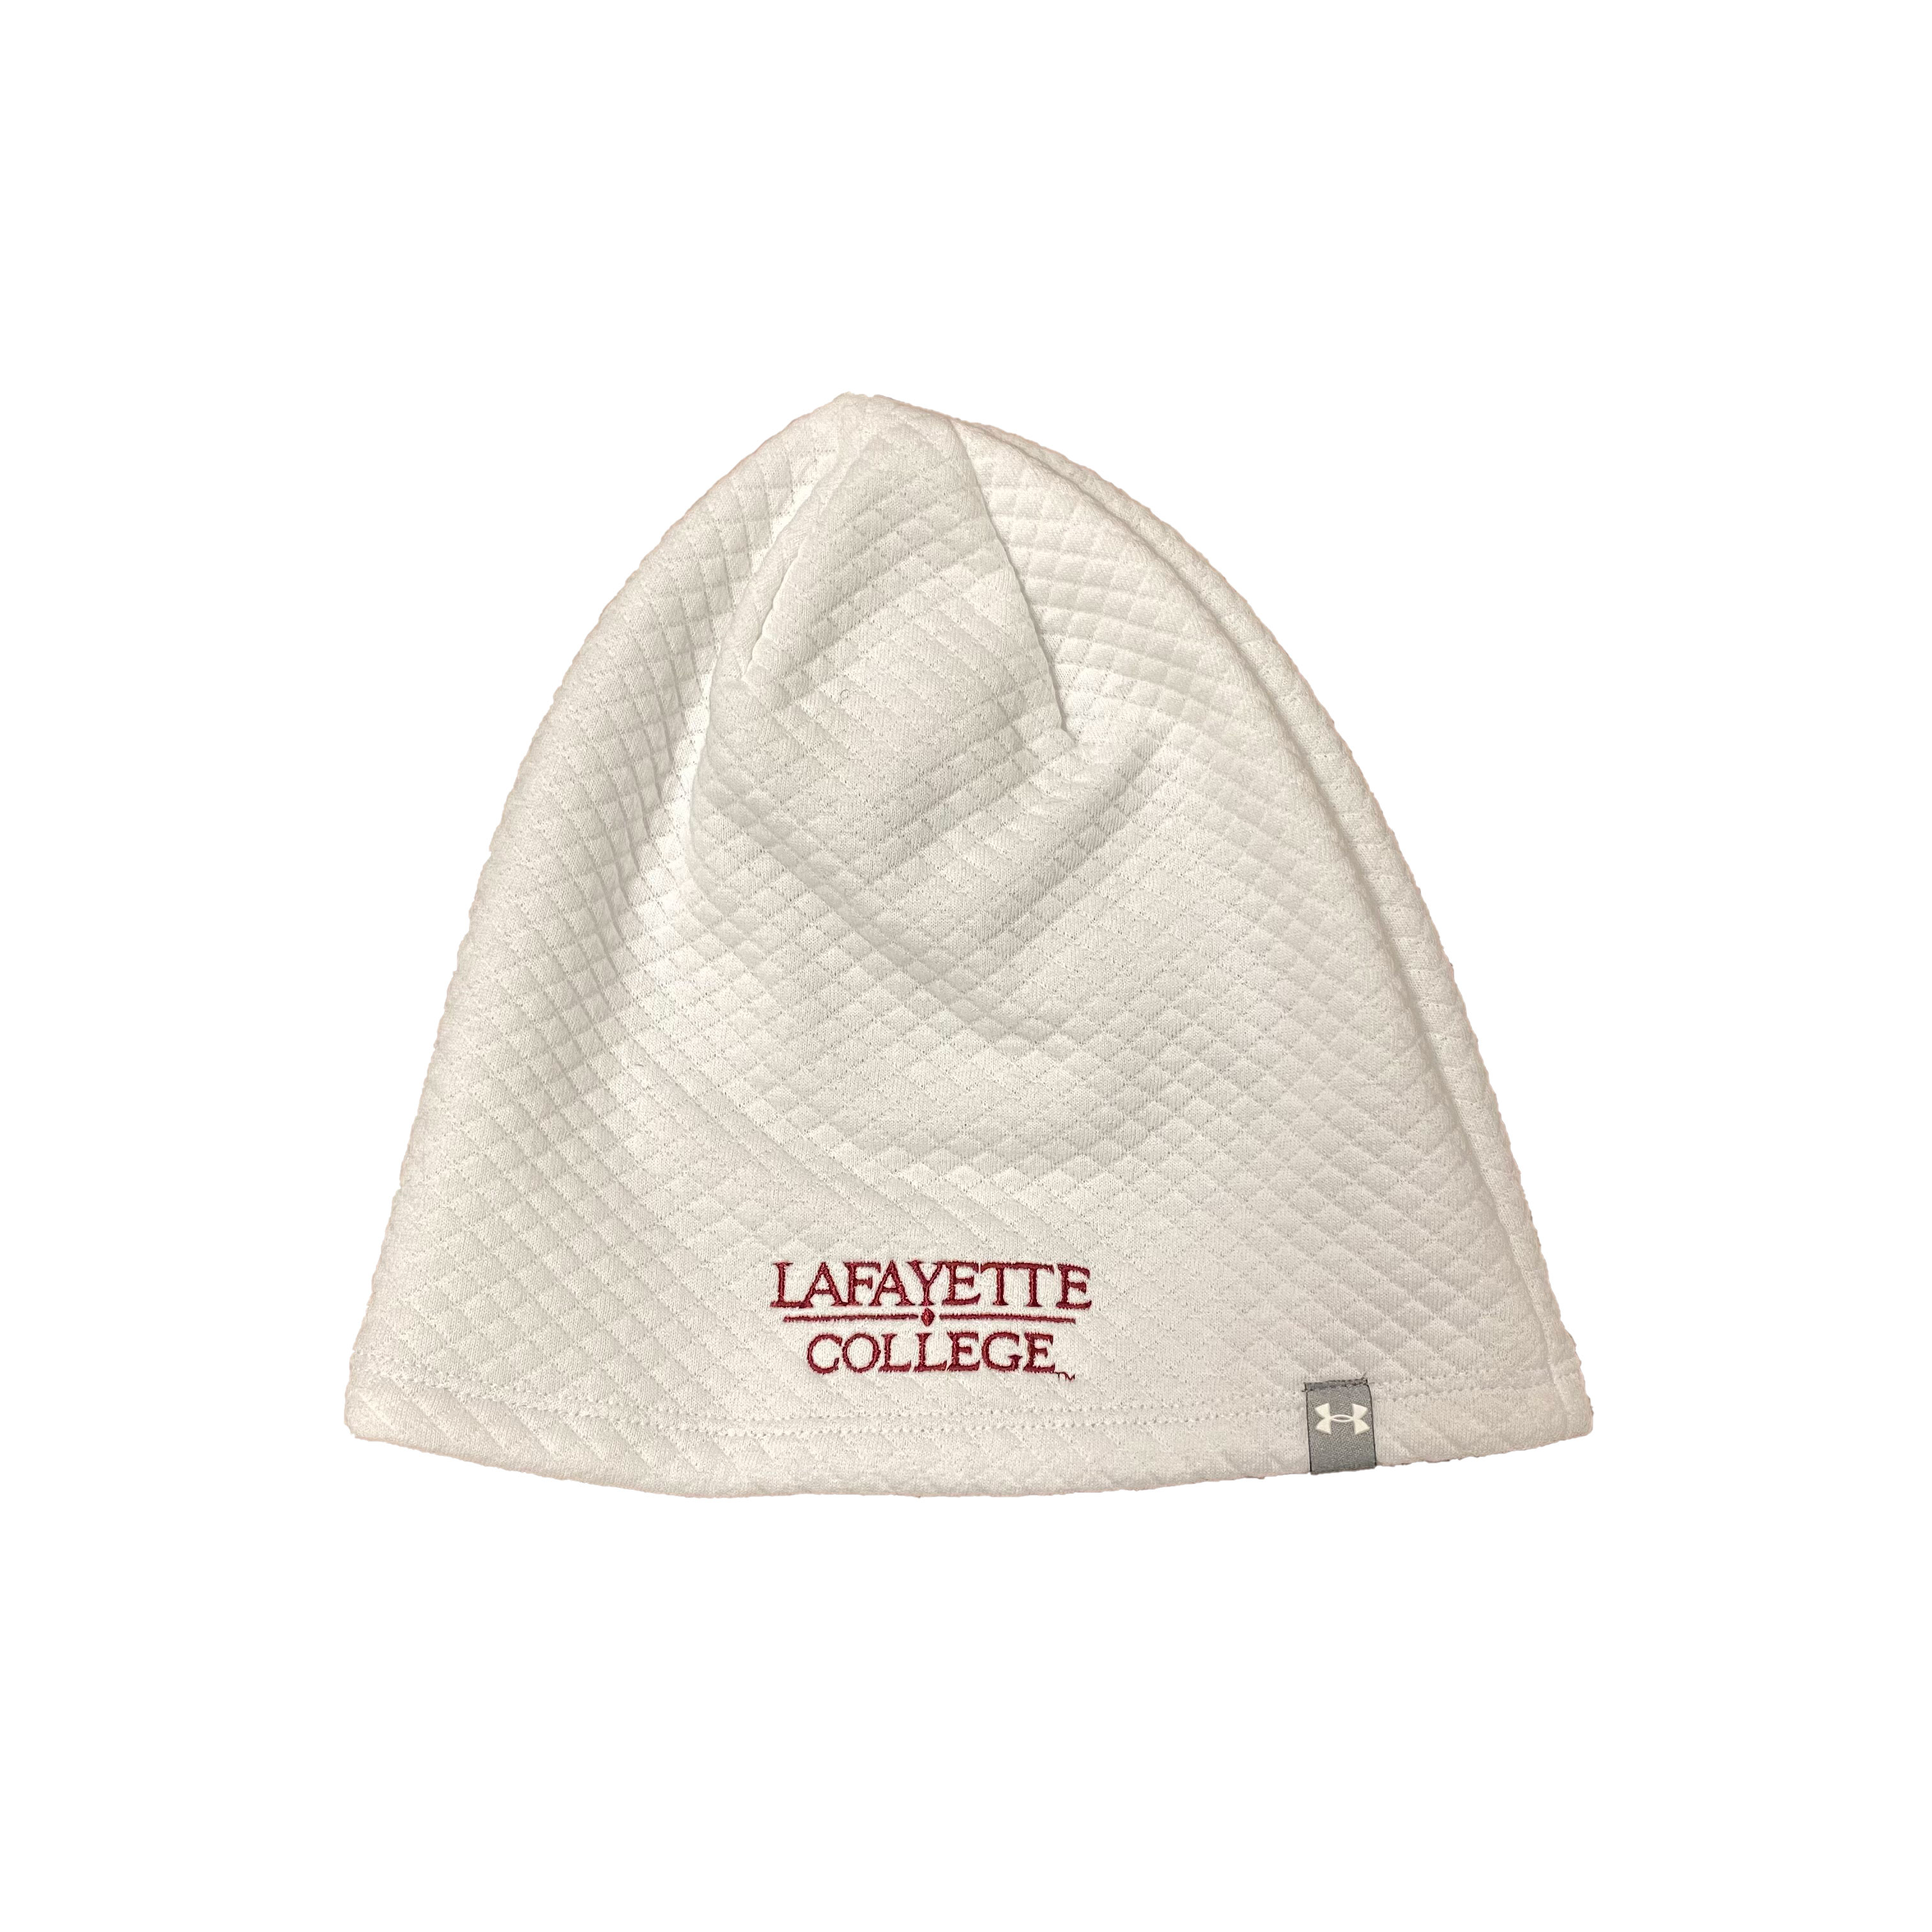 Image For HAT WHITE LAFAYETTE